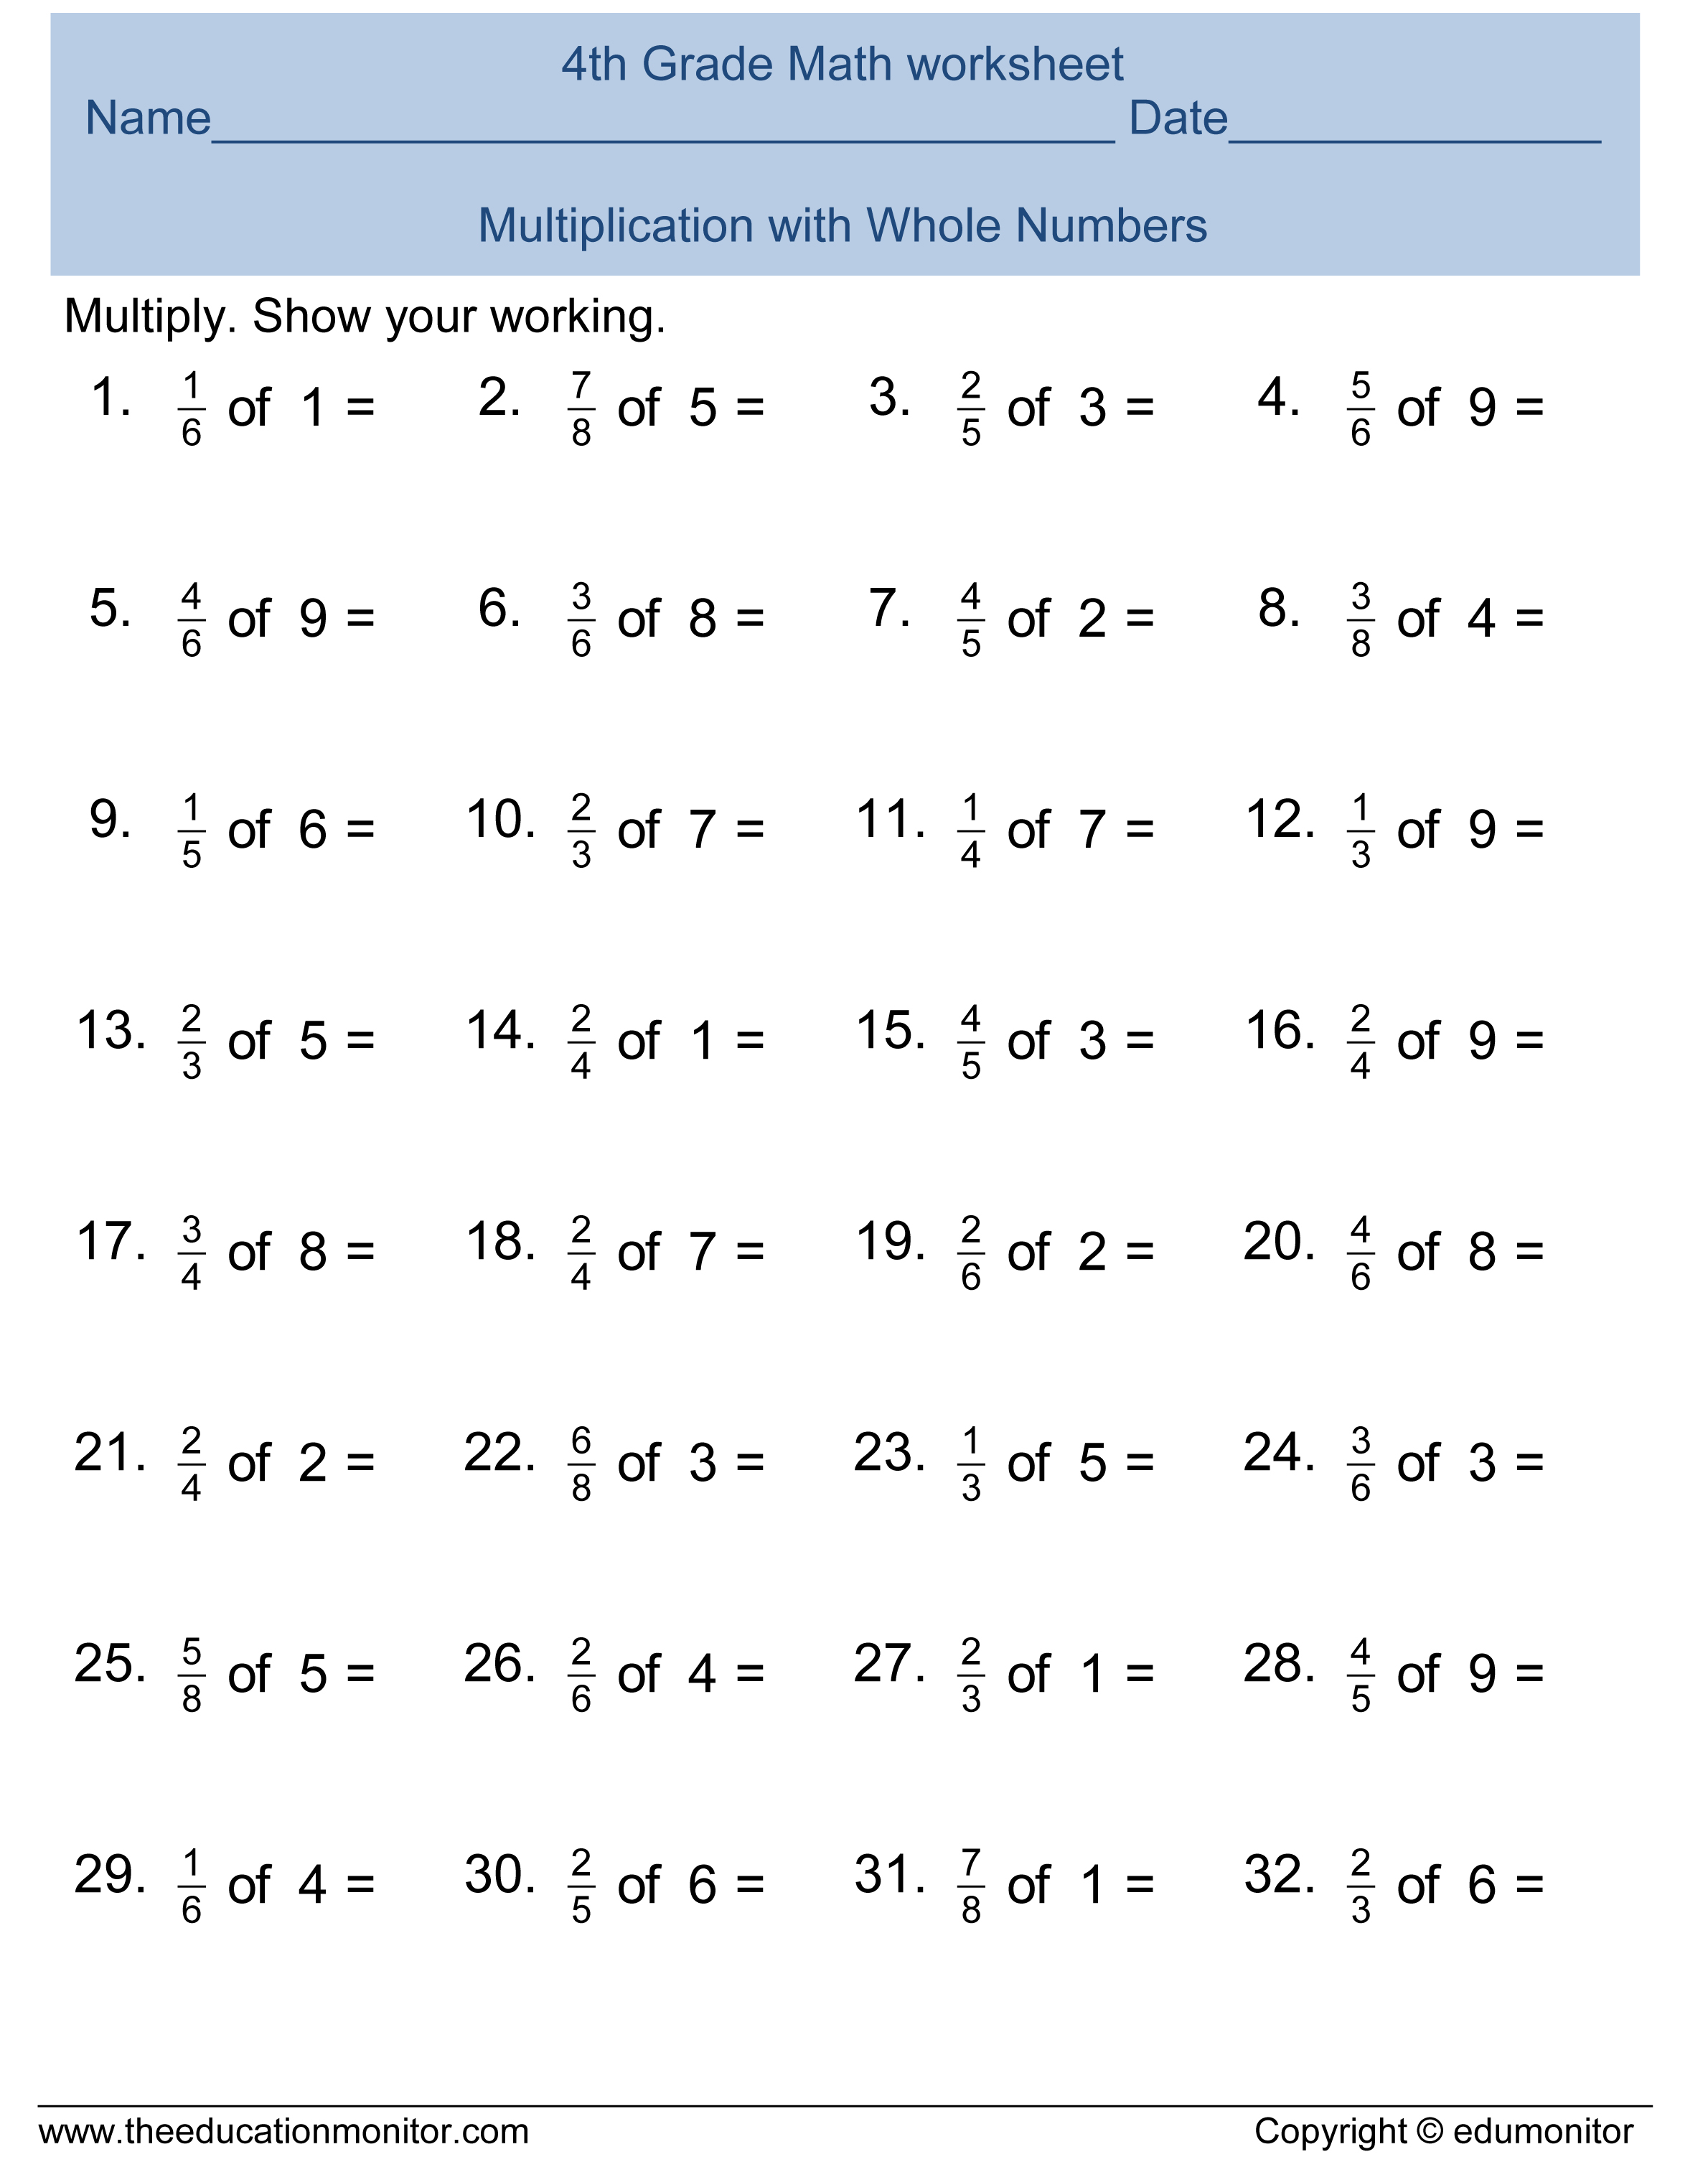 Worksheet Fractions Fourth Grade free printable worksheets for 4th grade fourth fractions and printables